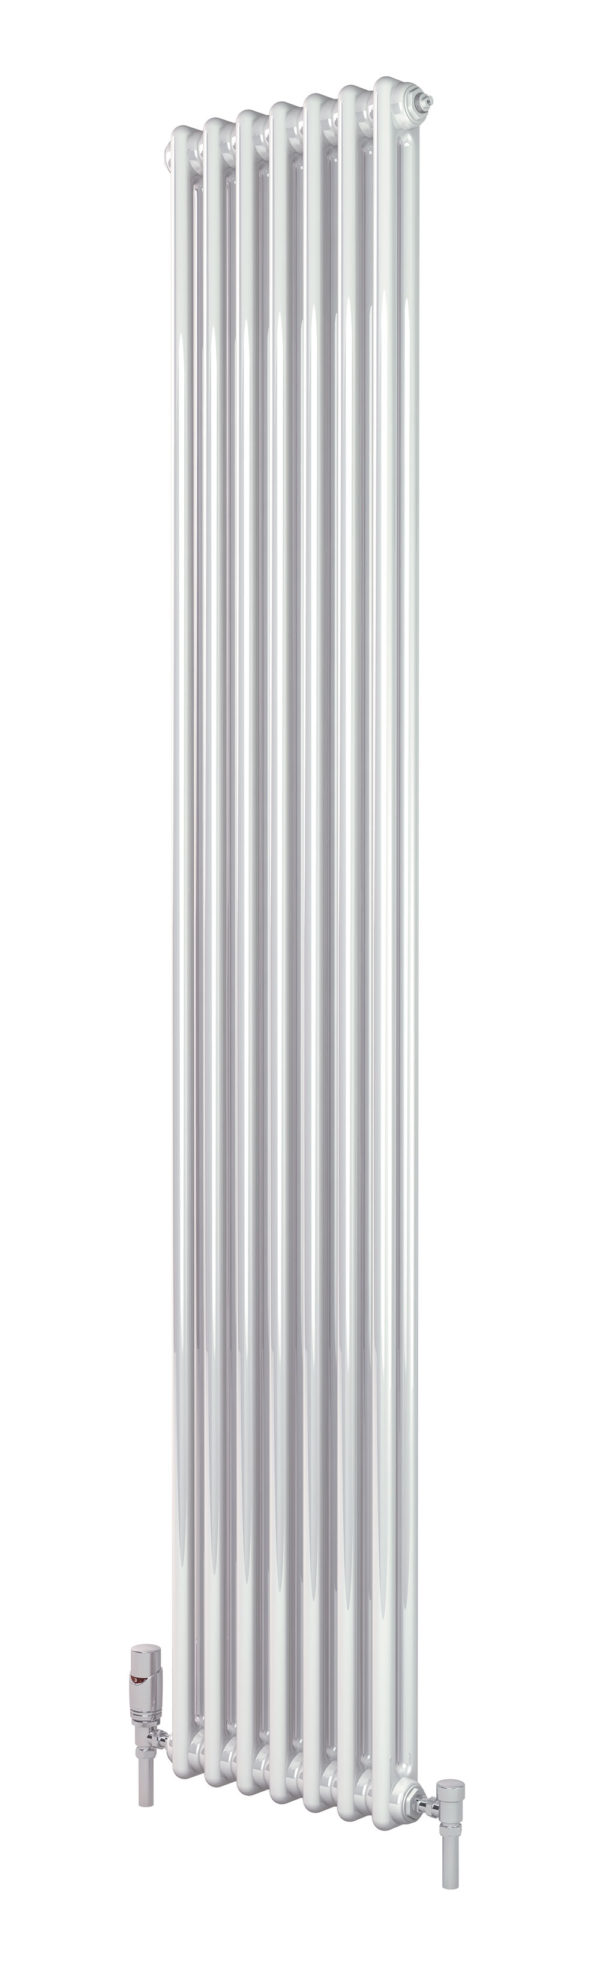 Classic-Column-Vertical-cut-out